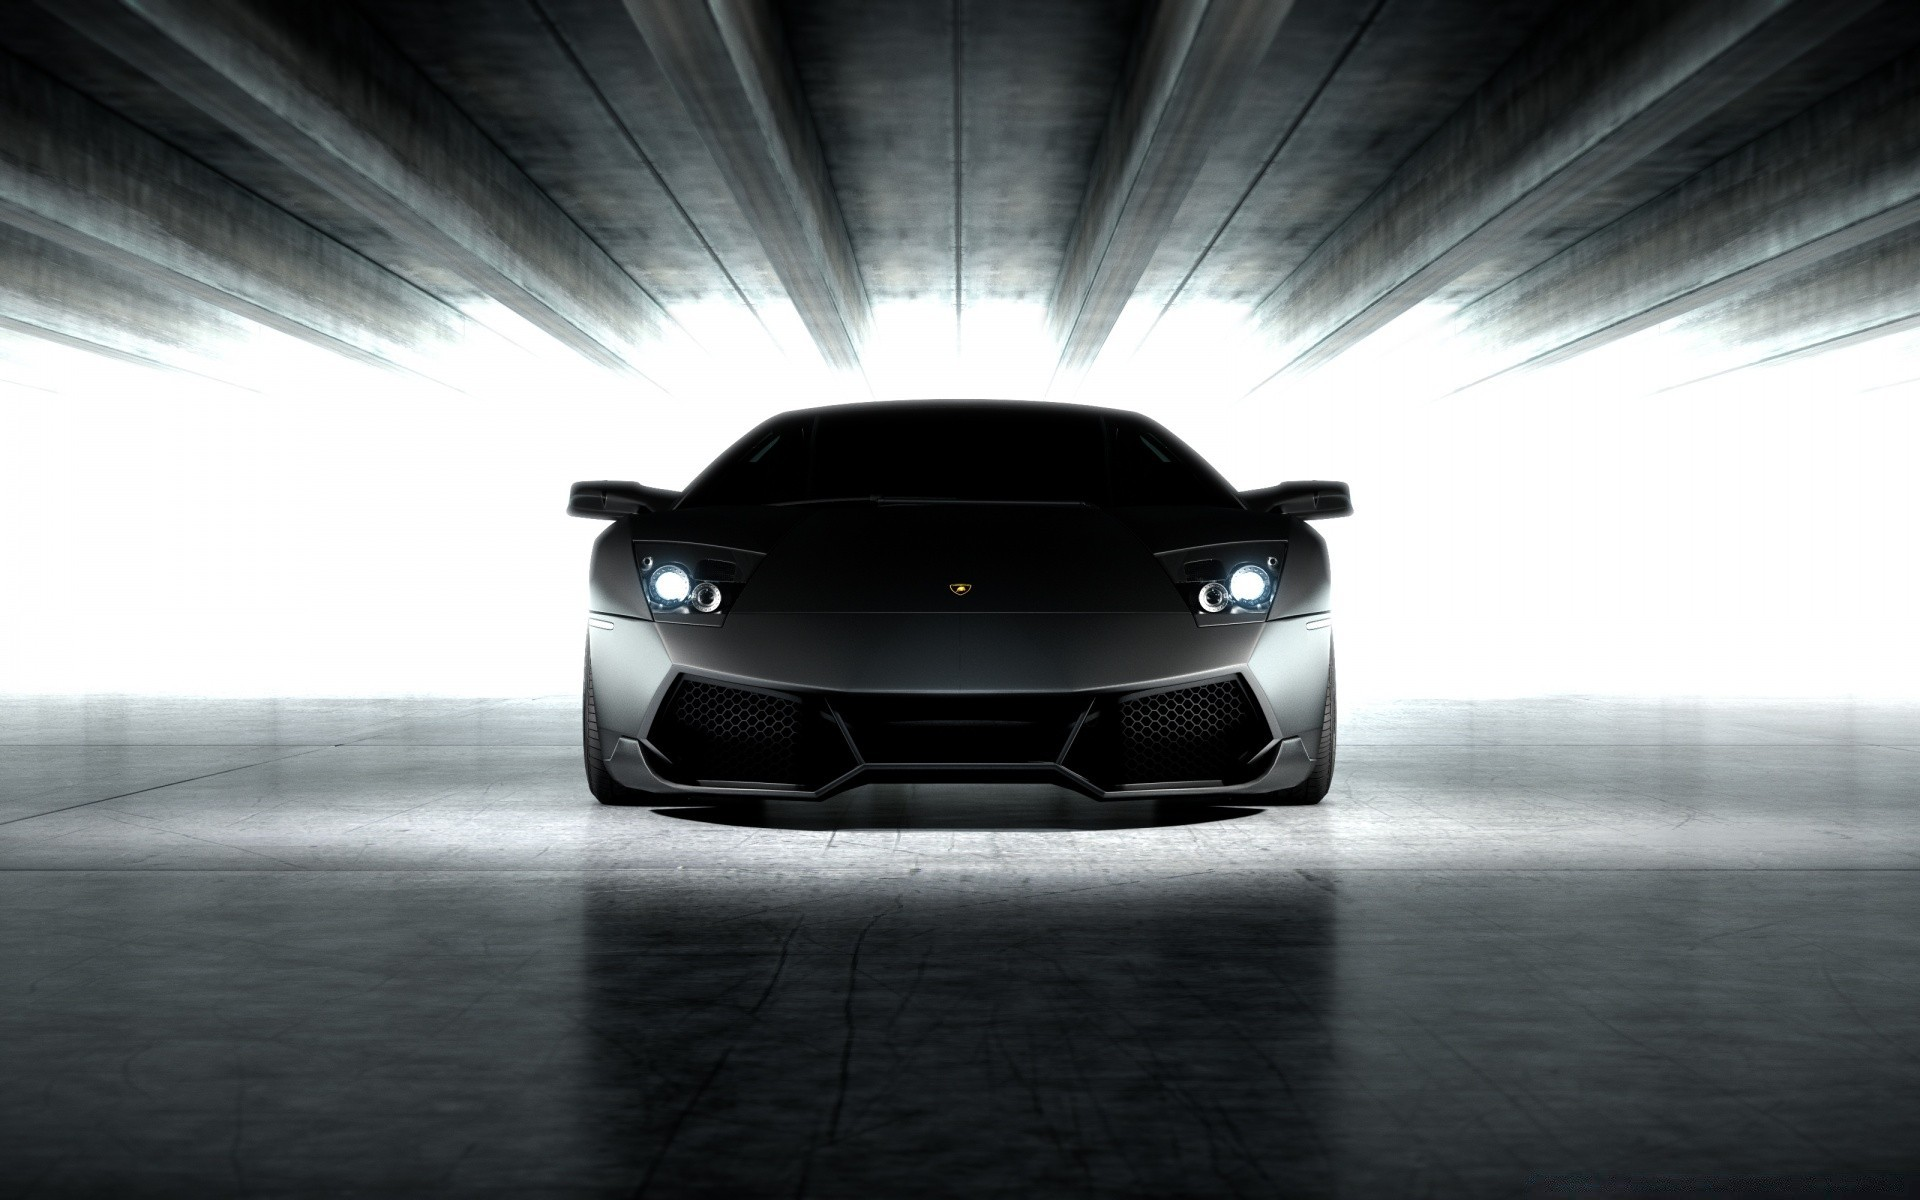 Lamborghini Murcielago LP SV Black wallpaper x